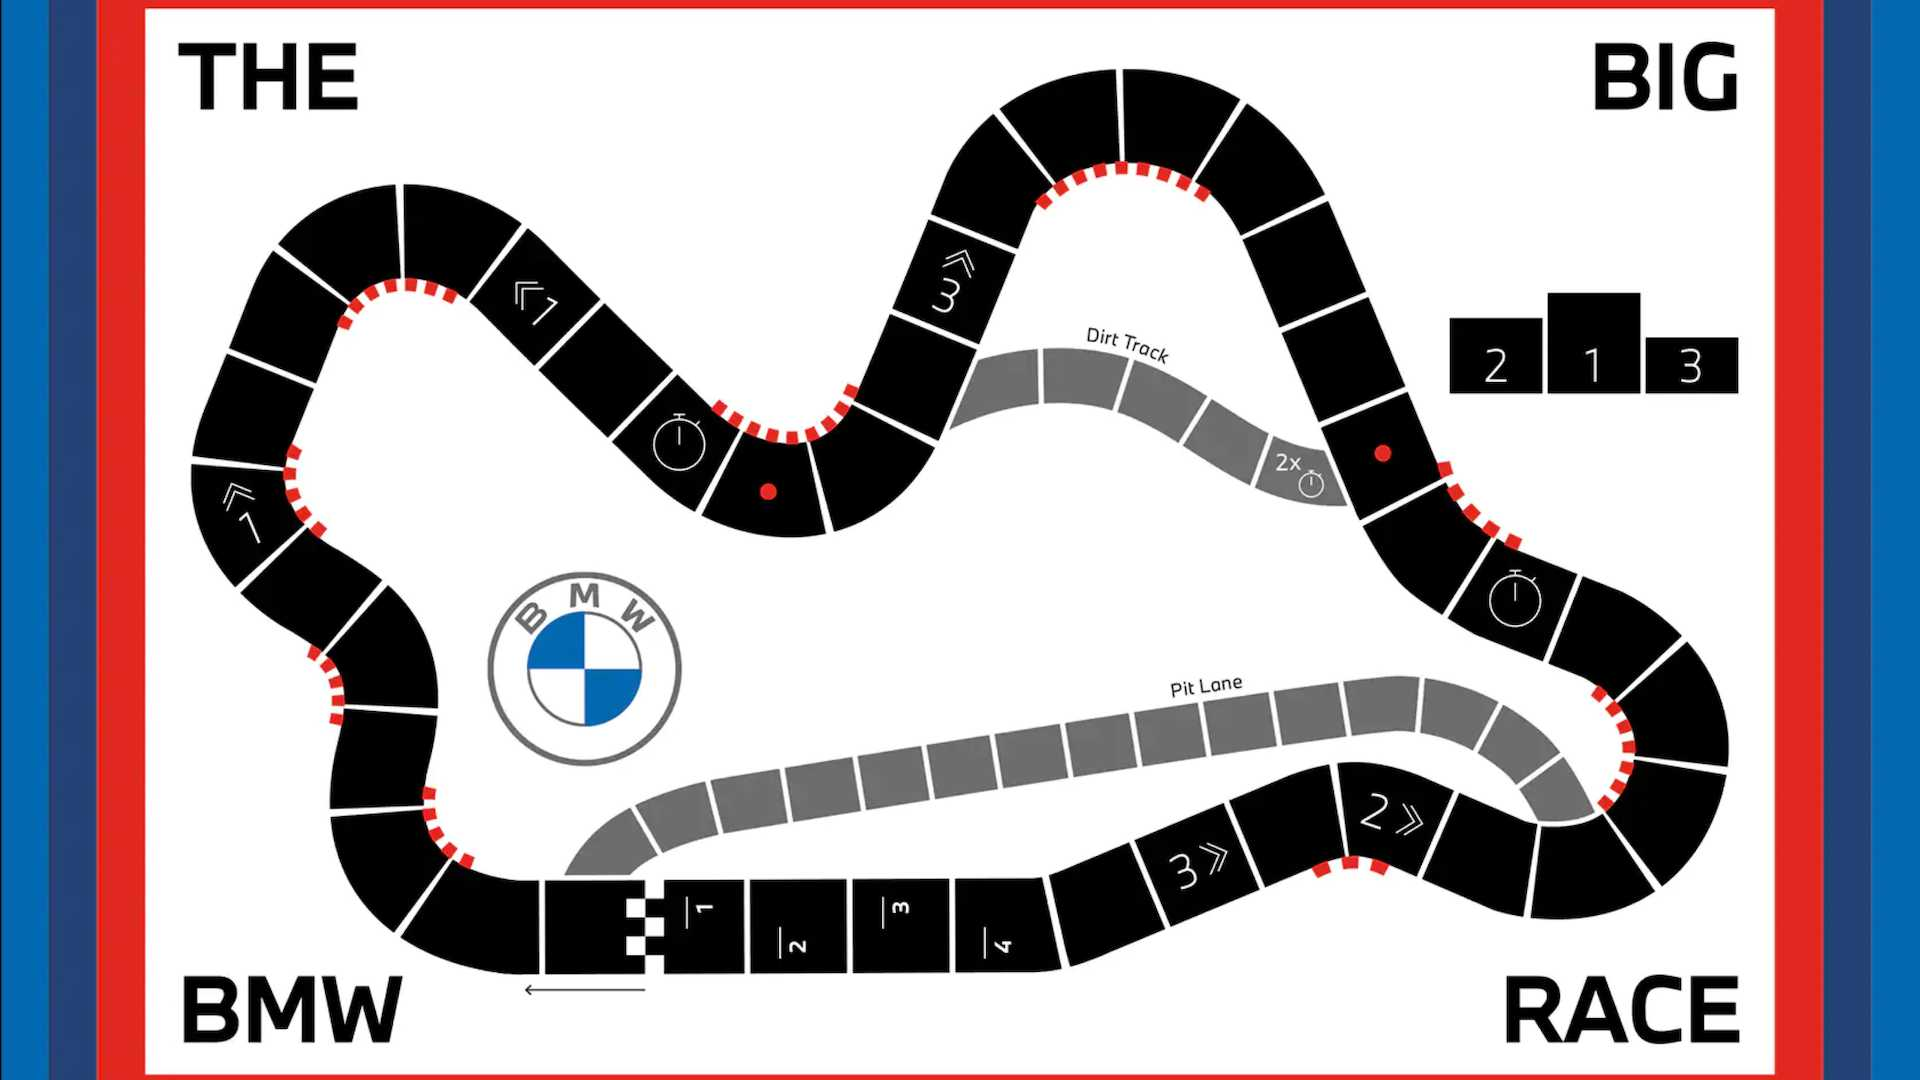 bmw themed board games